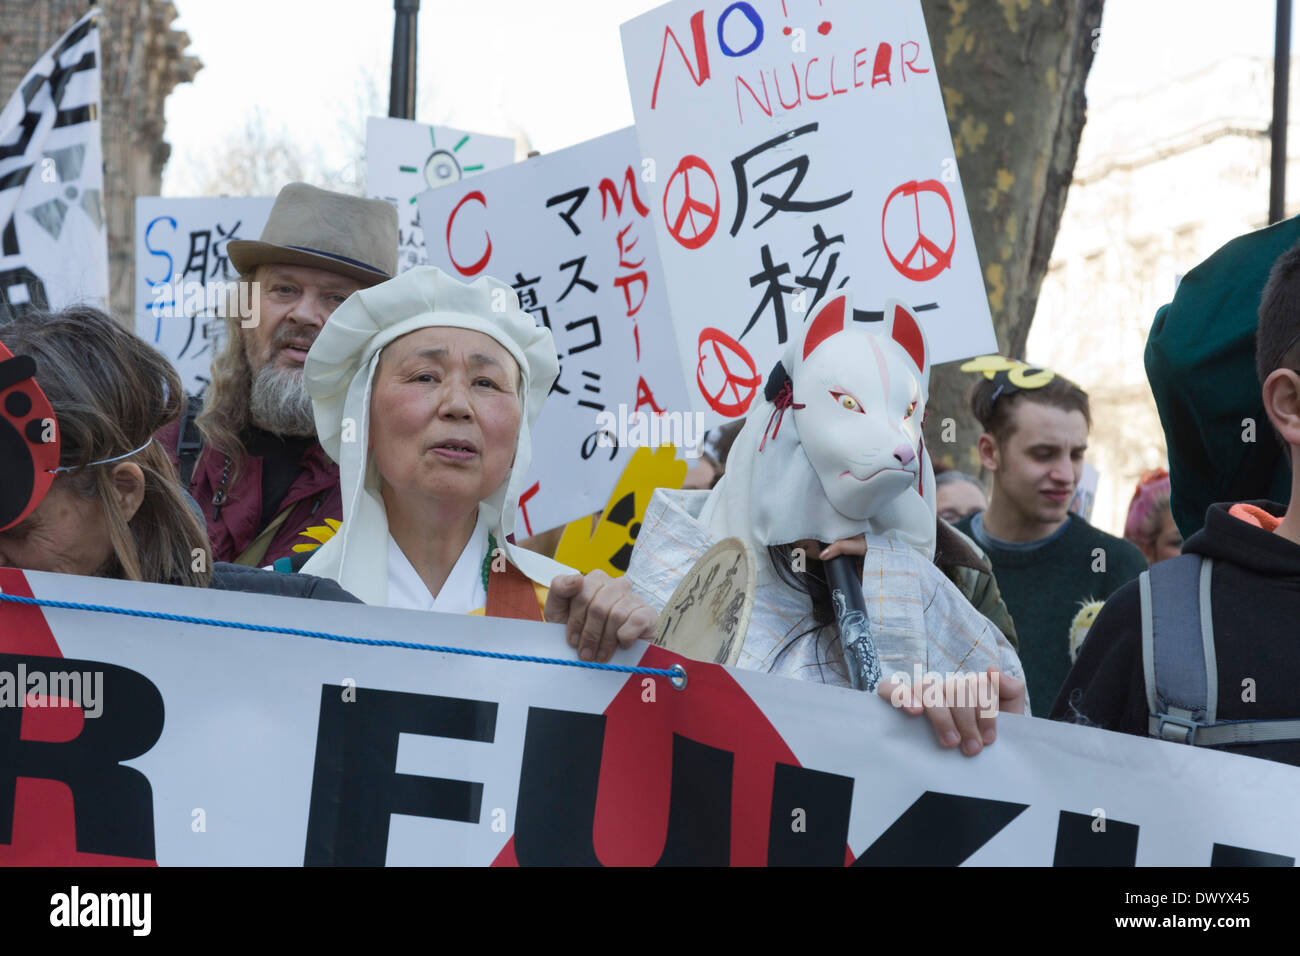 London, UK.  15 March 2014. Protest to remember the Fukushima Daiichi nuclear disaster. Japanese and British protesters called for an end to nuclear power on the 3rd anniversary of the nuclear disaster in Japan outside the gates to Downing Street, London. The protest was supported by 'Japanese Against Nuclear' and the Campaign for Nuclear Disarmament, CND. Credit:  Nick Savage/Alamy Live News - Stock Image